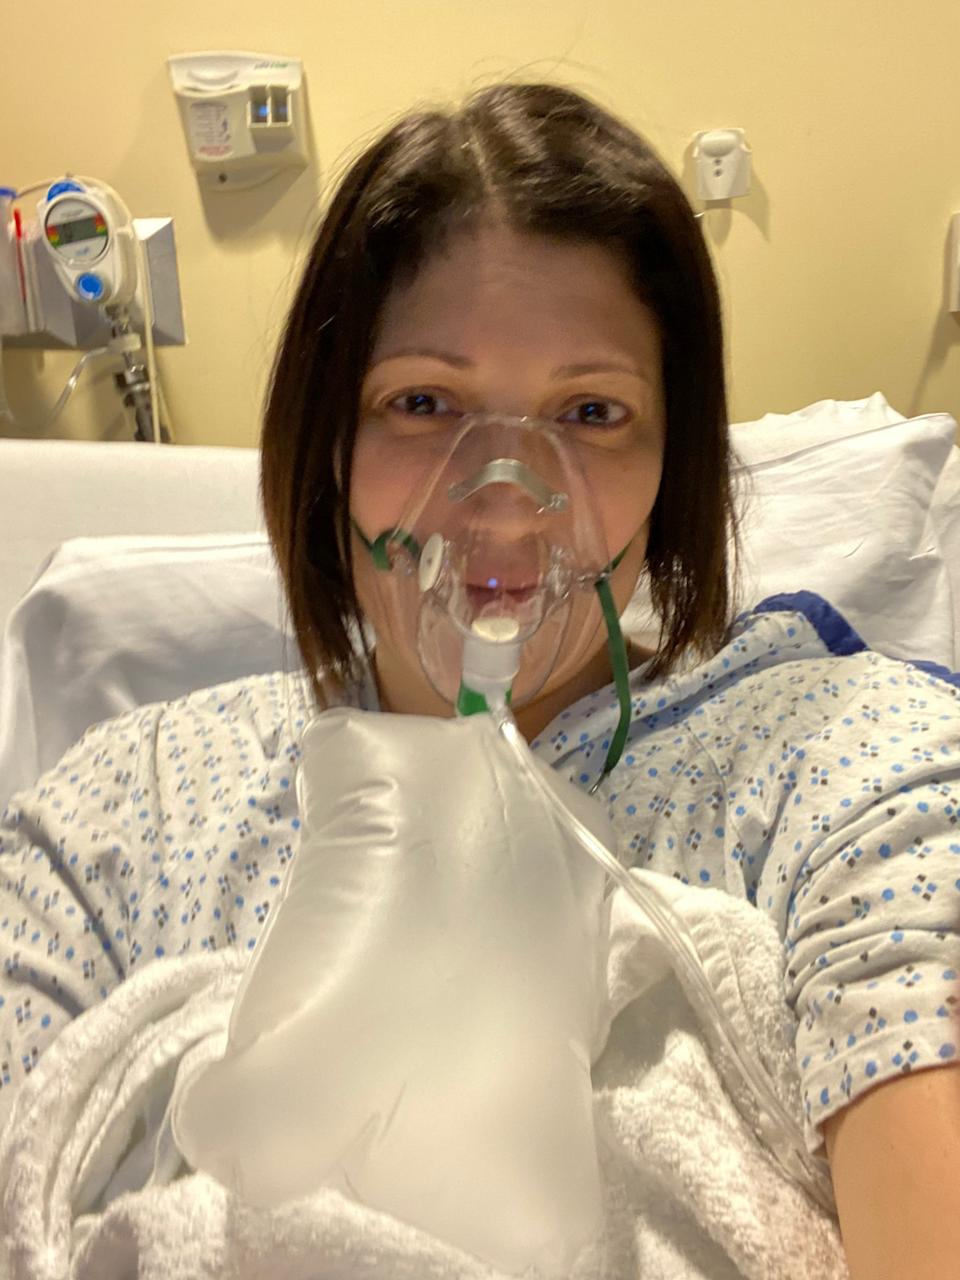 Sofia Burke, 43, of Elmwood Park, uses a non-rebreather mask to deliver high concentrations of oxygen while hospitalized with COVID on Nov. 25, 2020.